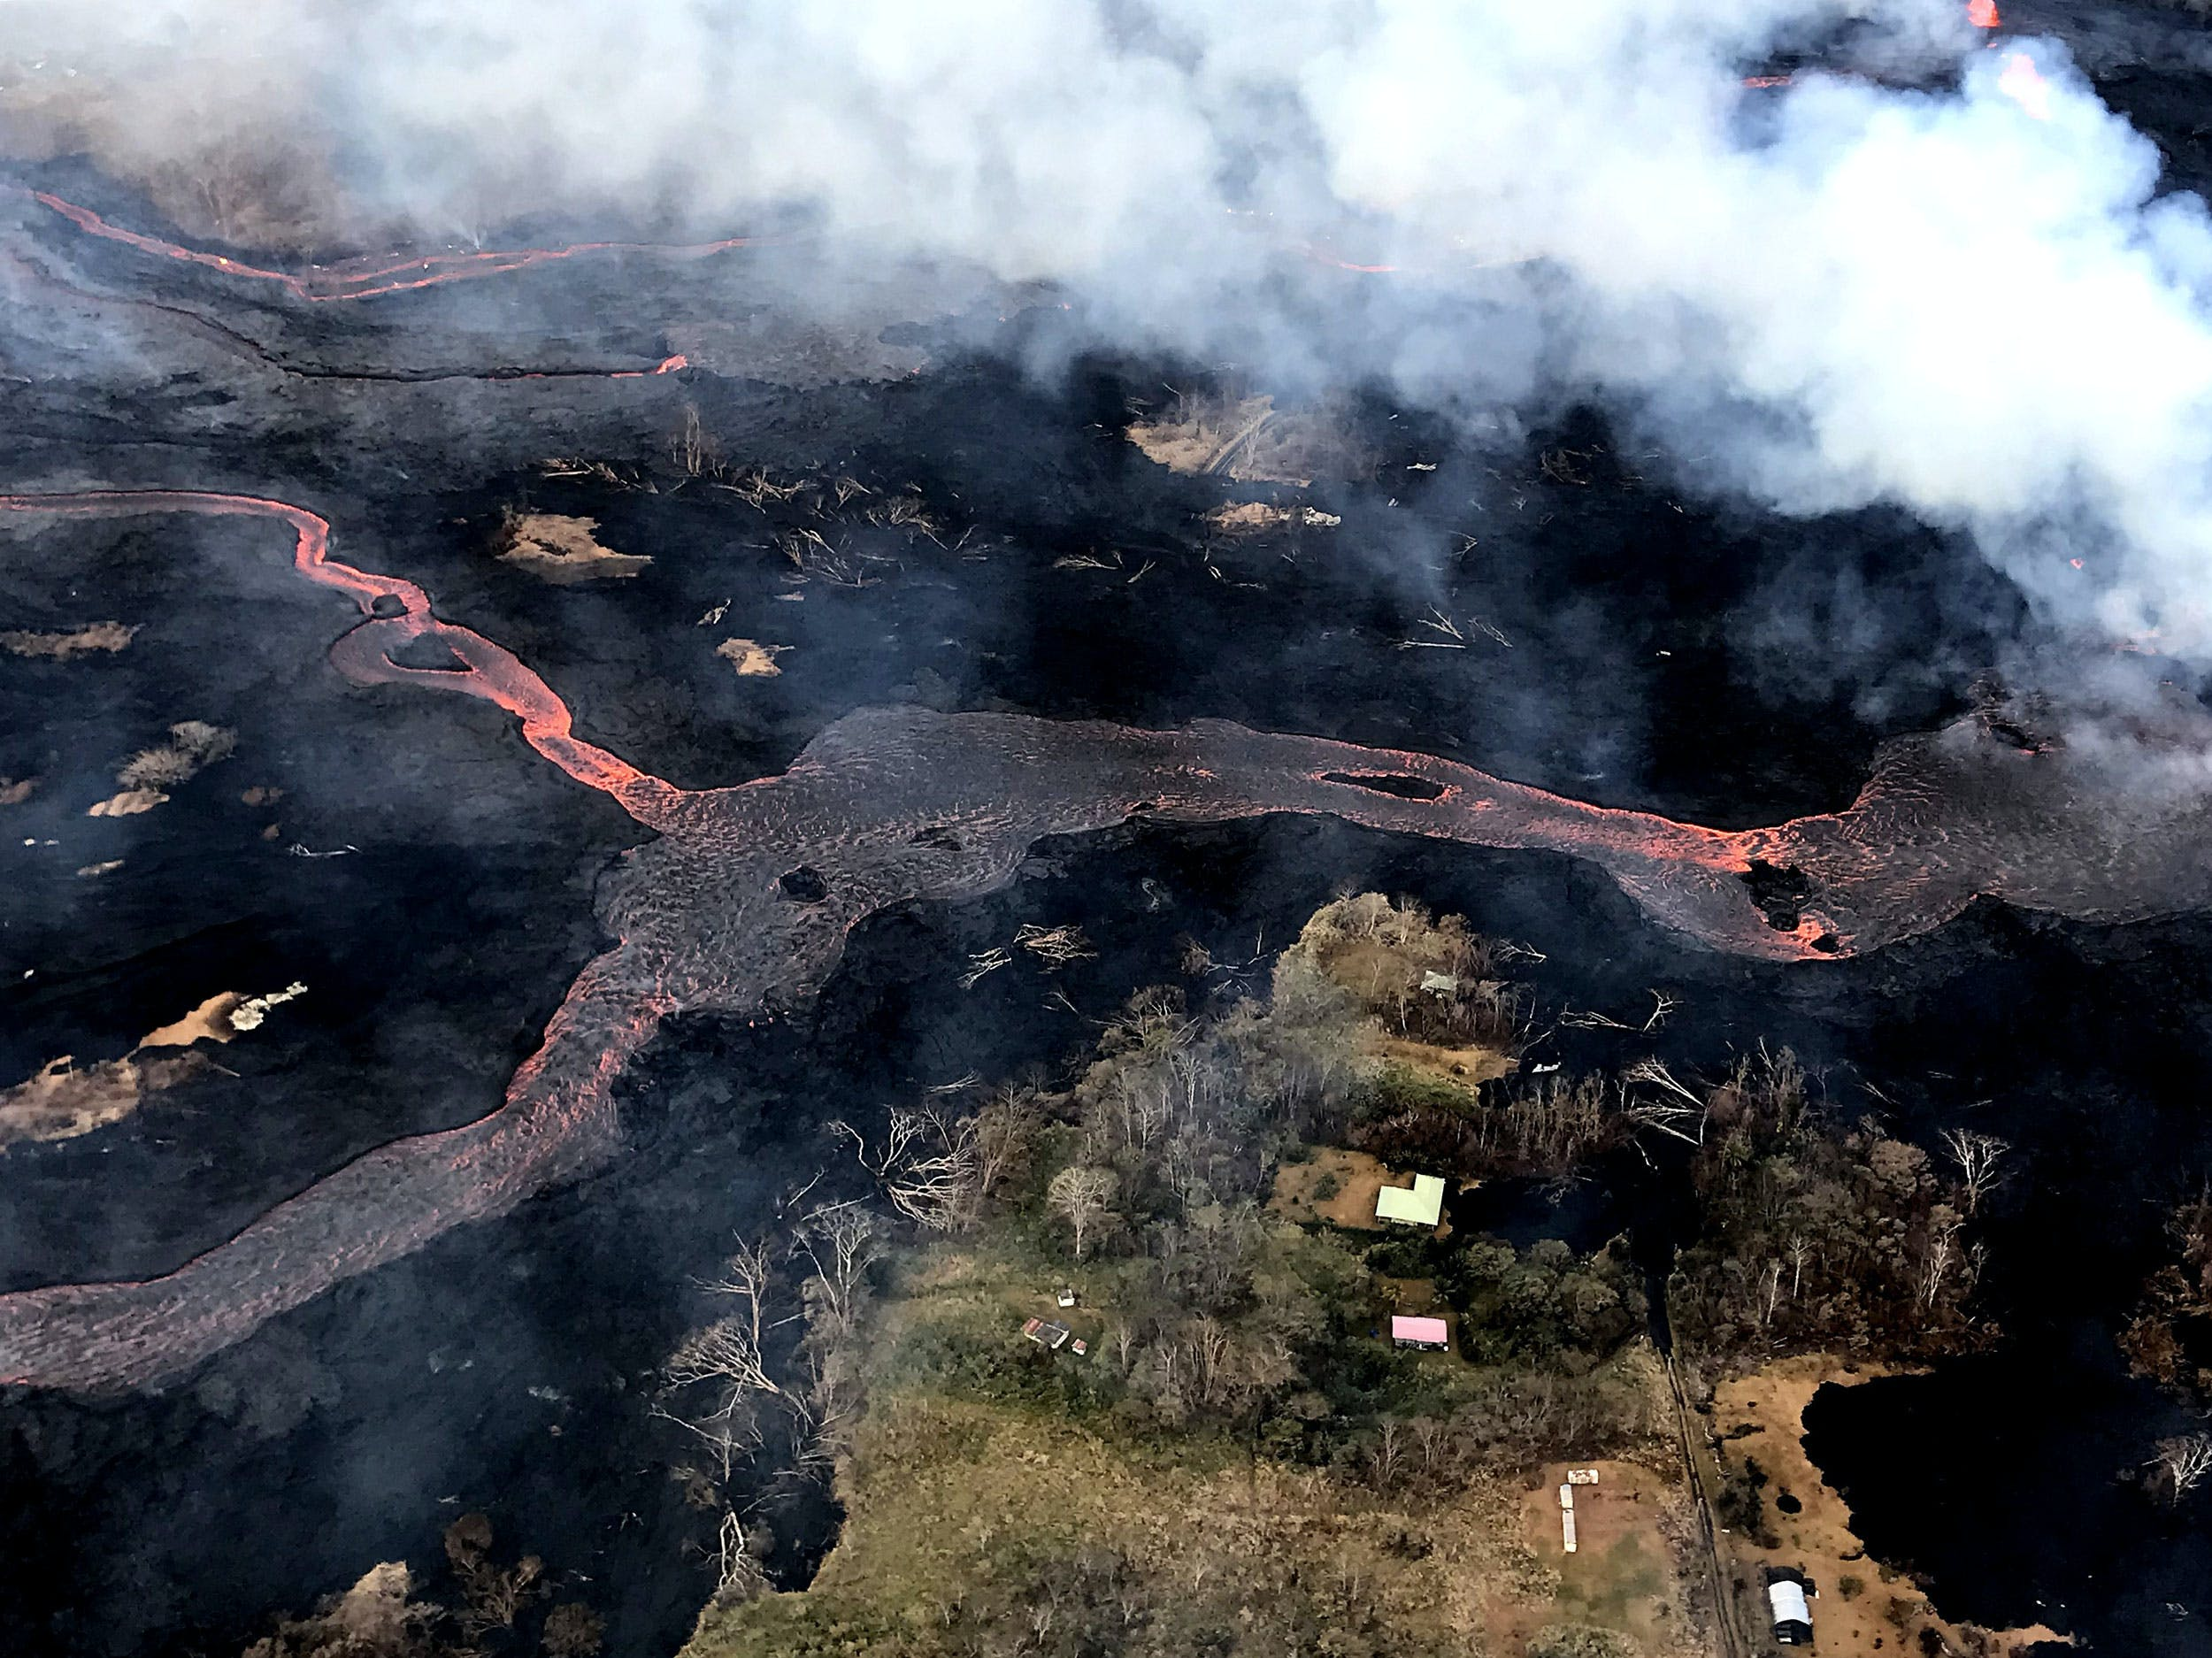 Hawaiian Cannabis Farmers Refuse to Leave Crops Amid Spreading Volcanic Lava1 New Yorks Health Department To Recommend The State Legalizes Recreational Marijuana